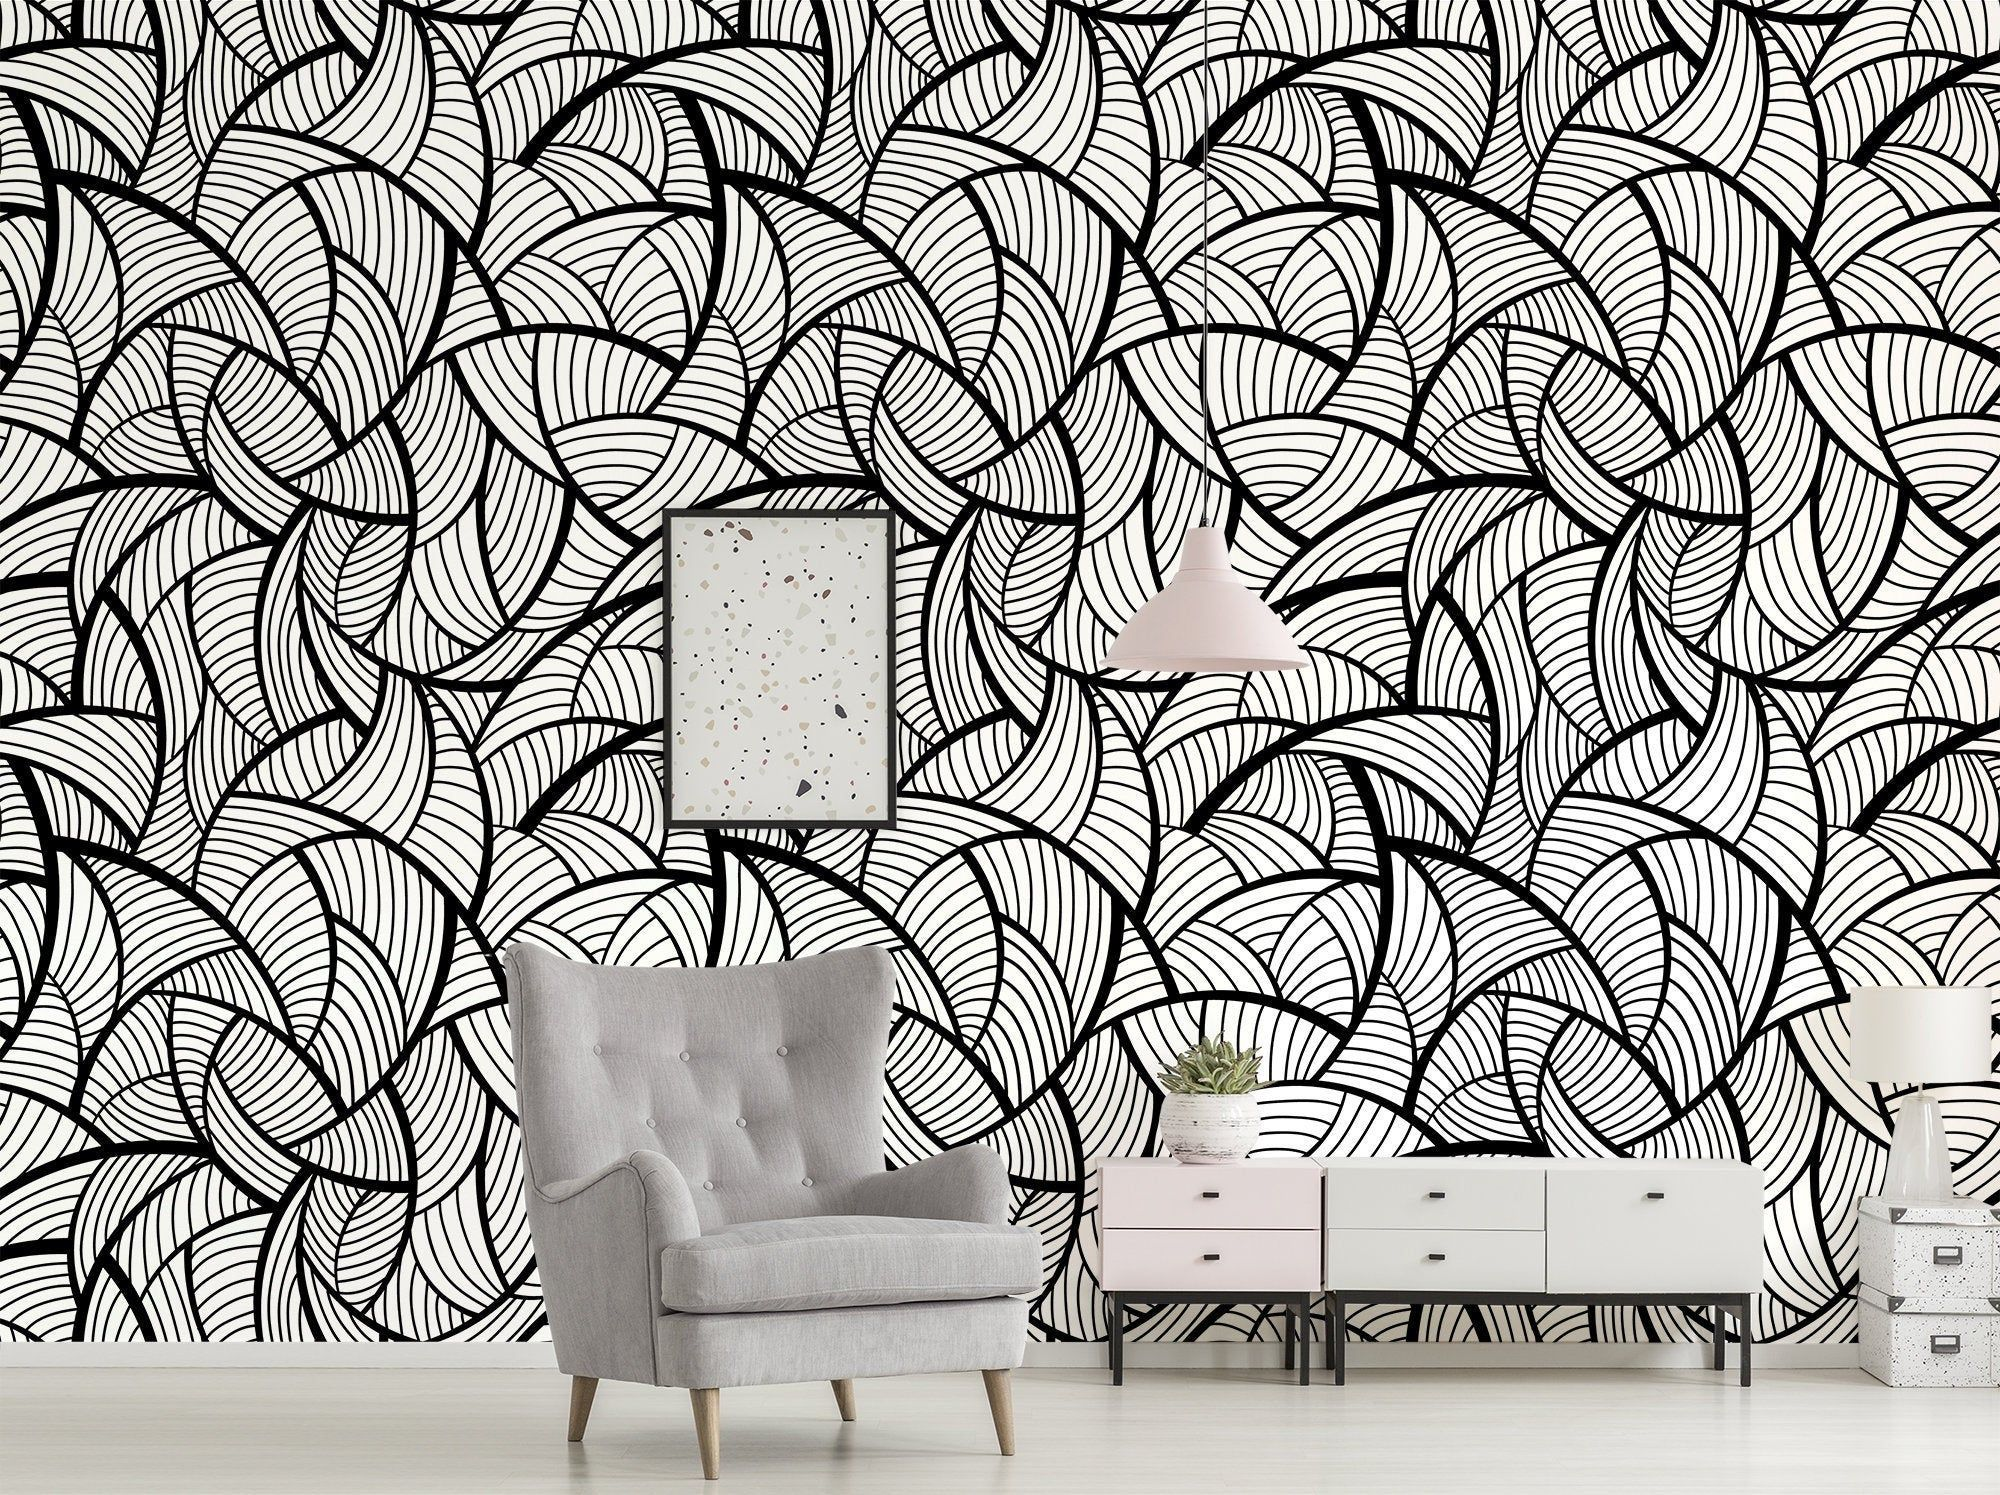 Abstract Wallpaper With Black And White Pattern Peel And Etsy Abstract Wallpaper Removable Wallpaper Home Decor